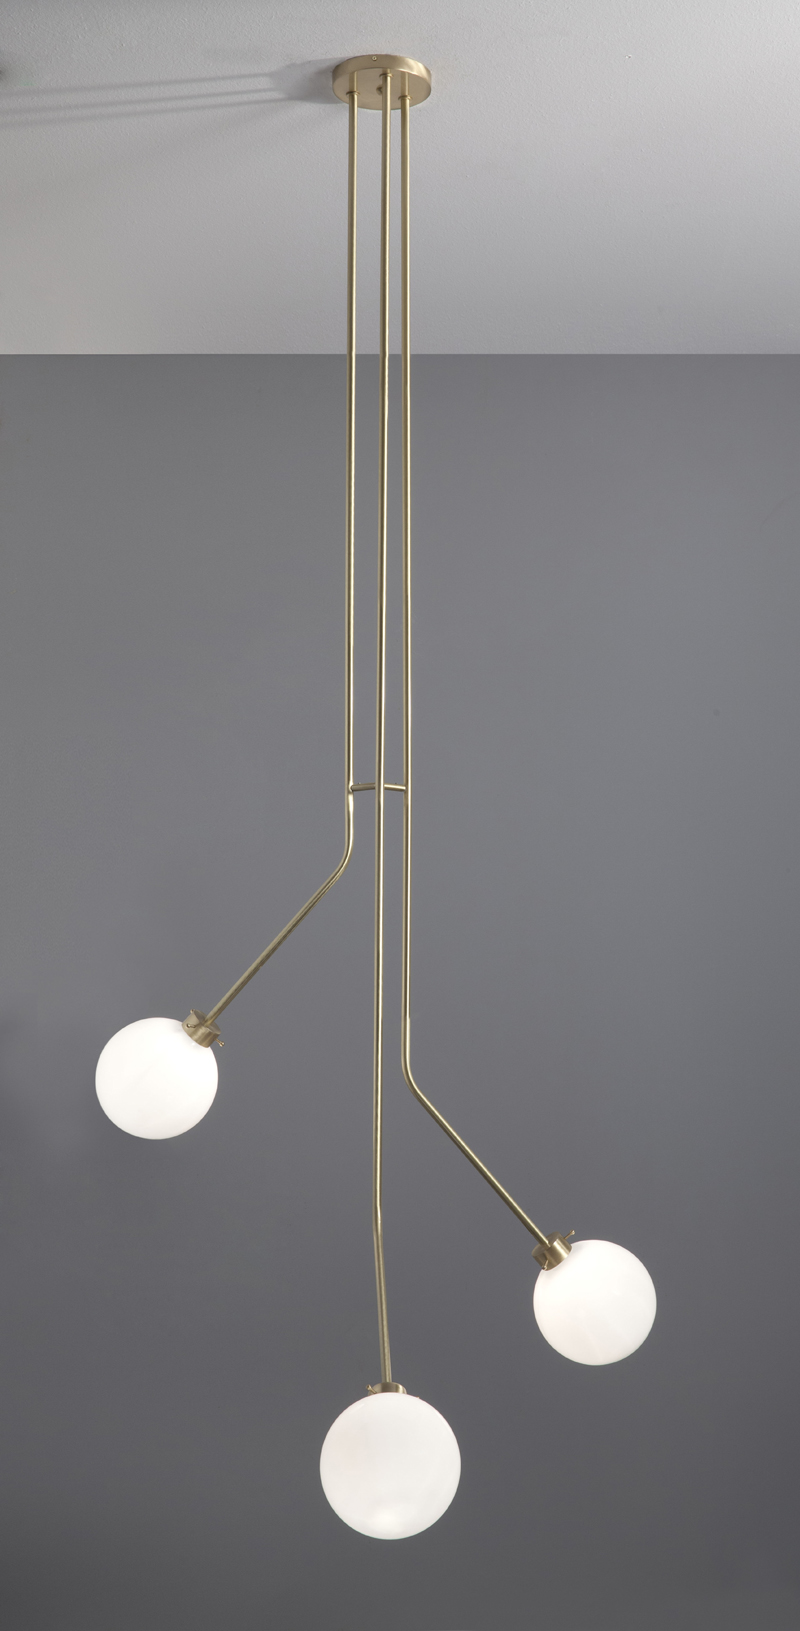 usona lighting. Hanging Lamp 09377 Usona Lighting